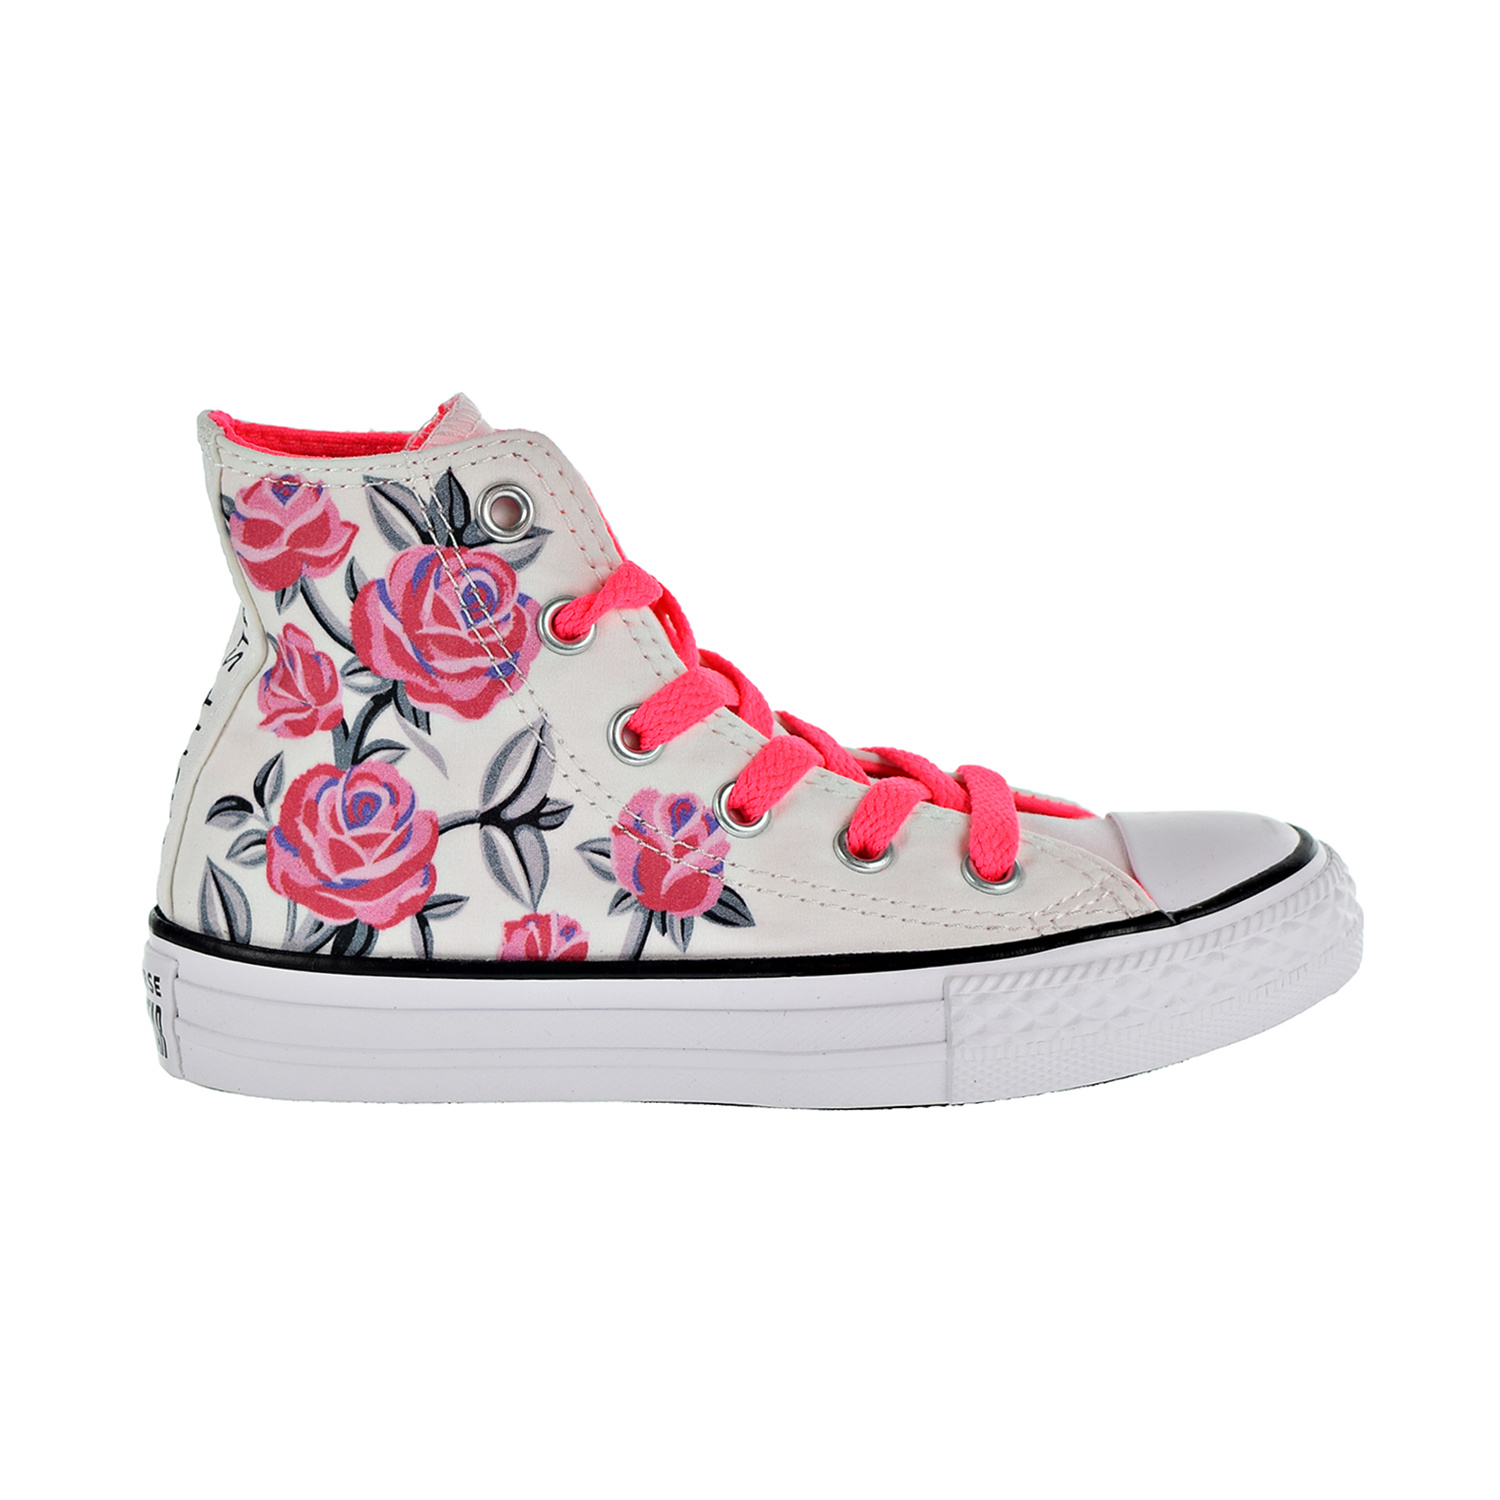 b052fd0c485a Details about Converse Chuck Taylor All Star Hi Little Kids  Shoes  White Racer Pink 663623F